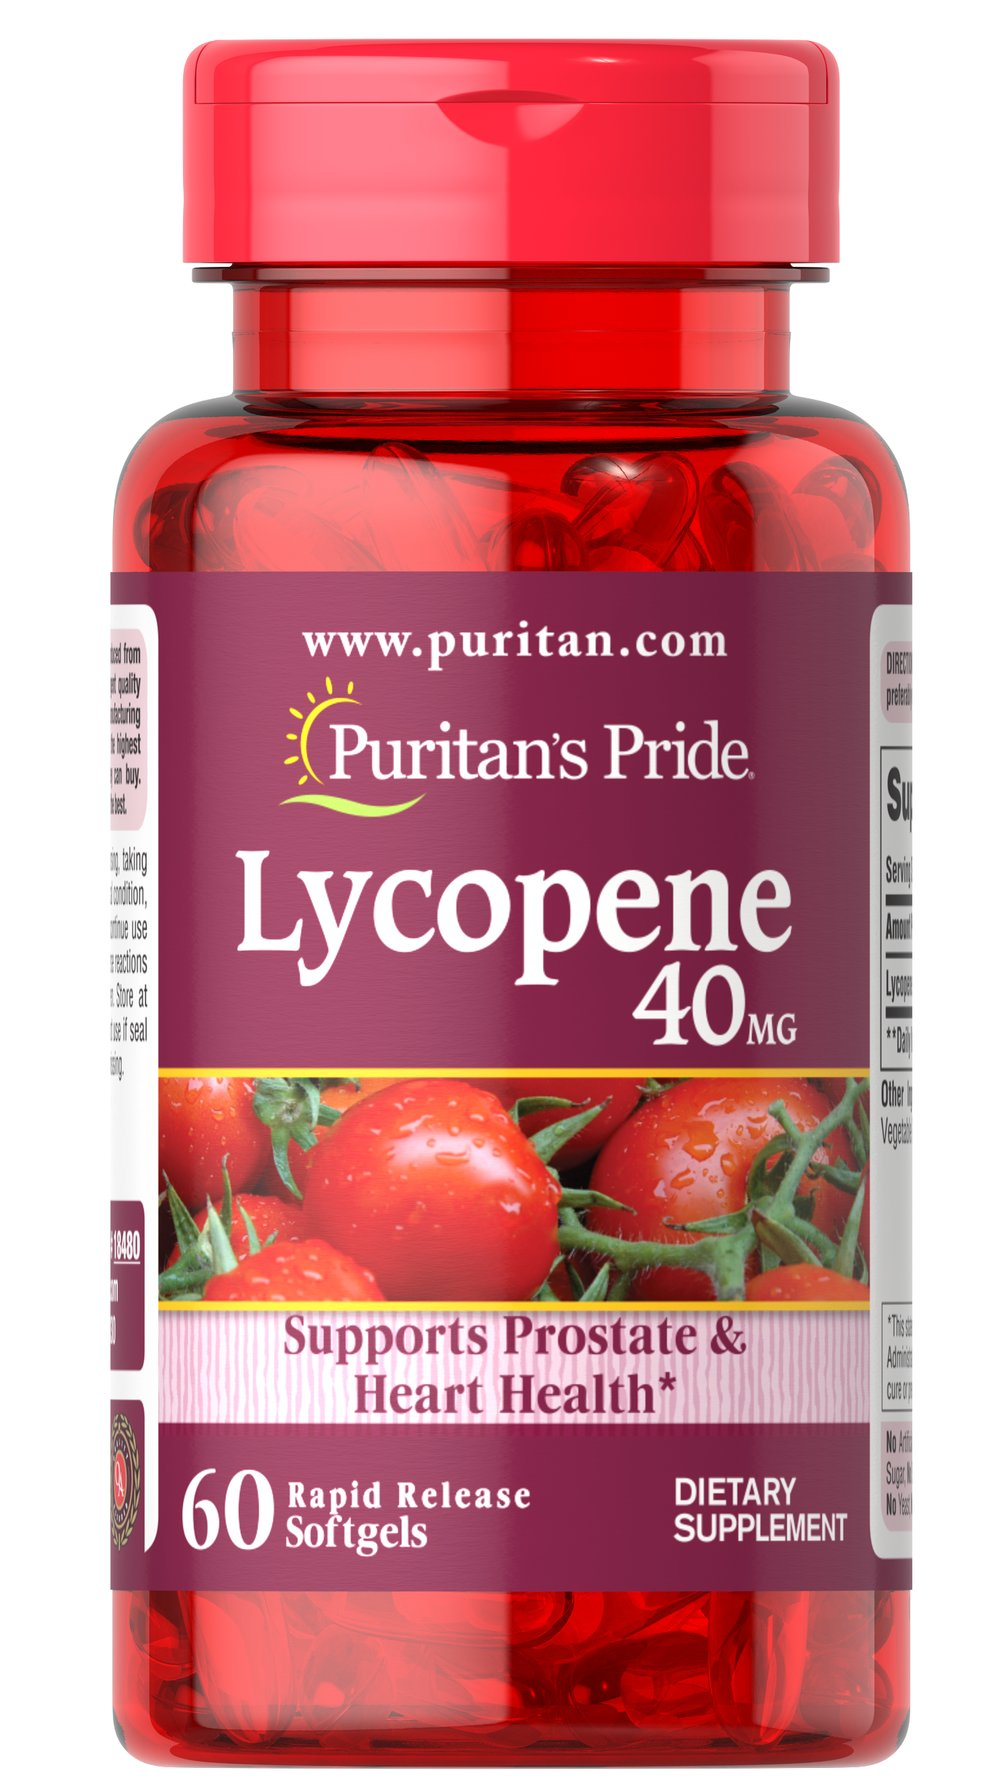 Lycopene 40 mg <p>Lycopene, a naturally occurring carotenoid, possesses antioxidant properties which help neutralize harmful free radicals in cells, and play a role in maintaining good health.**  Lycopene promotes prostate and heart health, and supports the immune system.** Adults can take one softgel daily with a meal.</p> 60 Softgels 40 mg $42.29